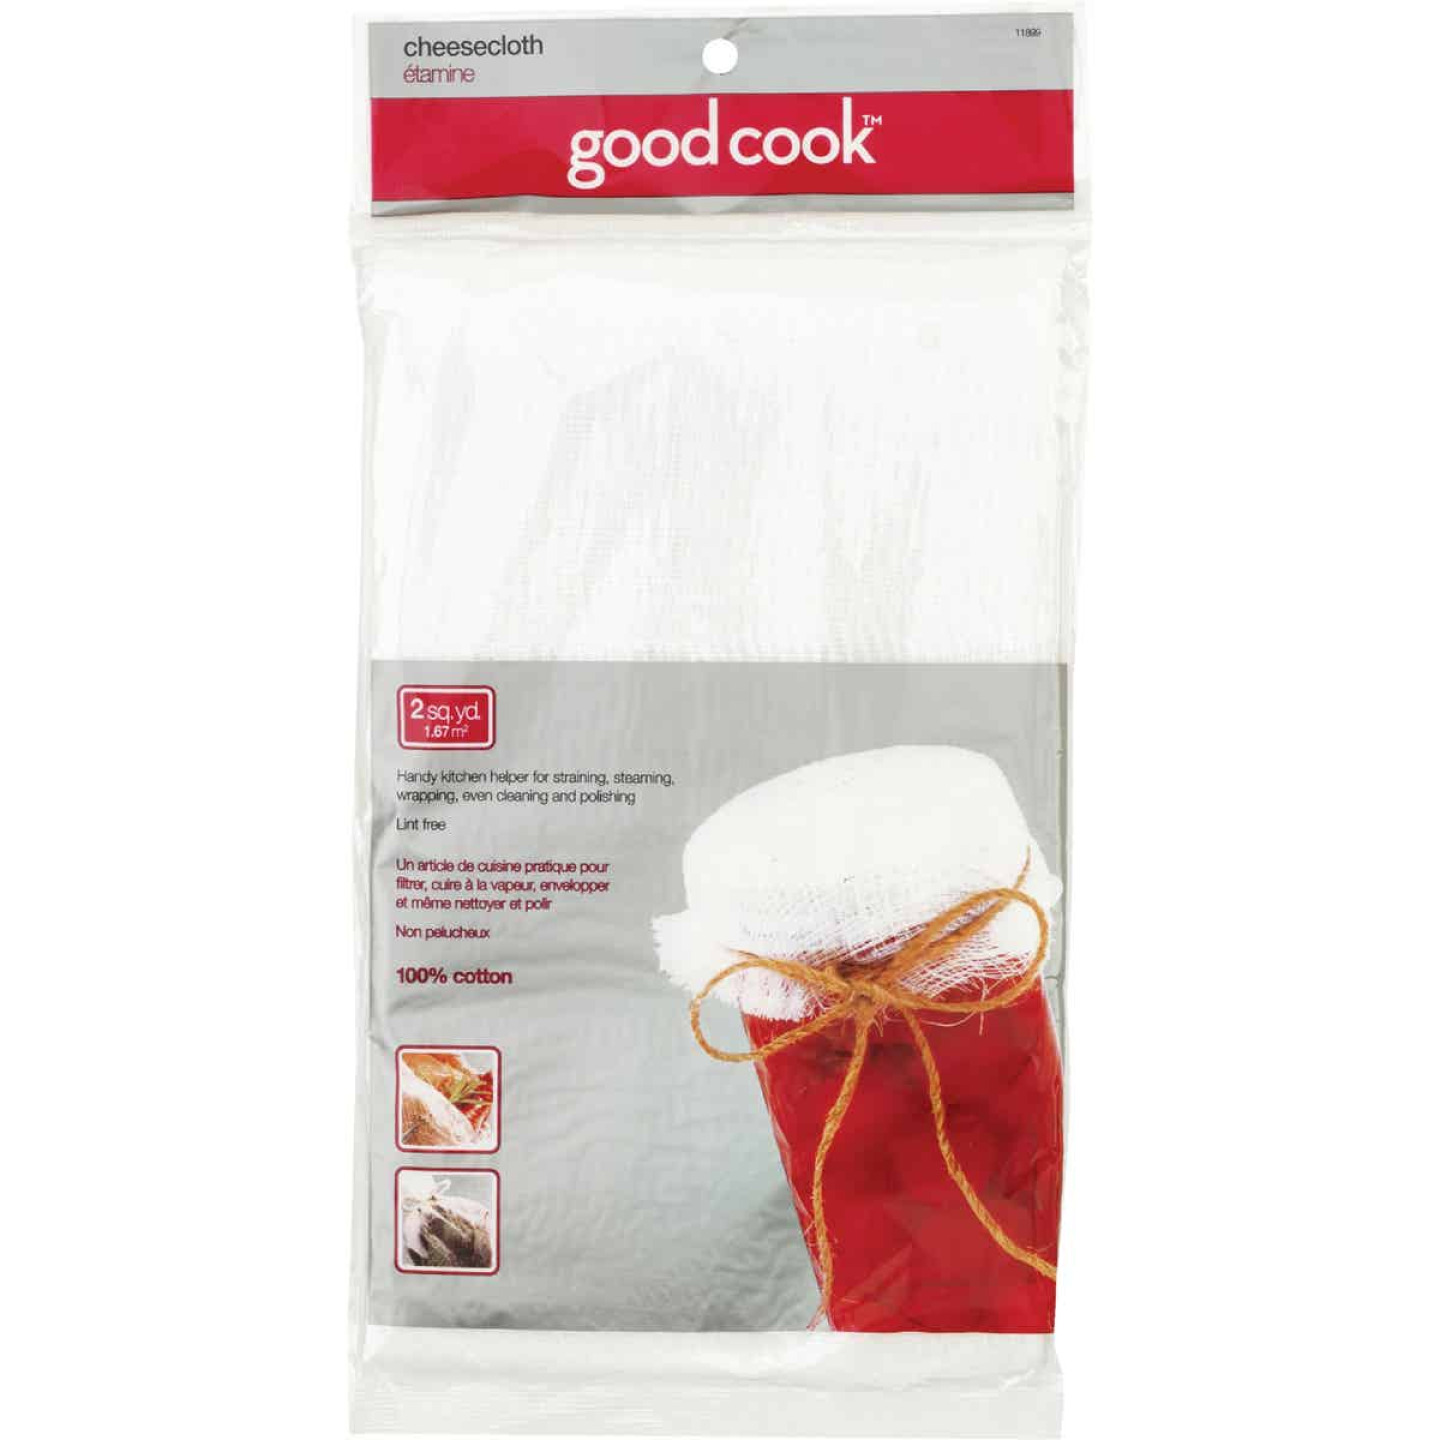 Goodcook 100% Cotton Cheesecloth Image 1